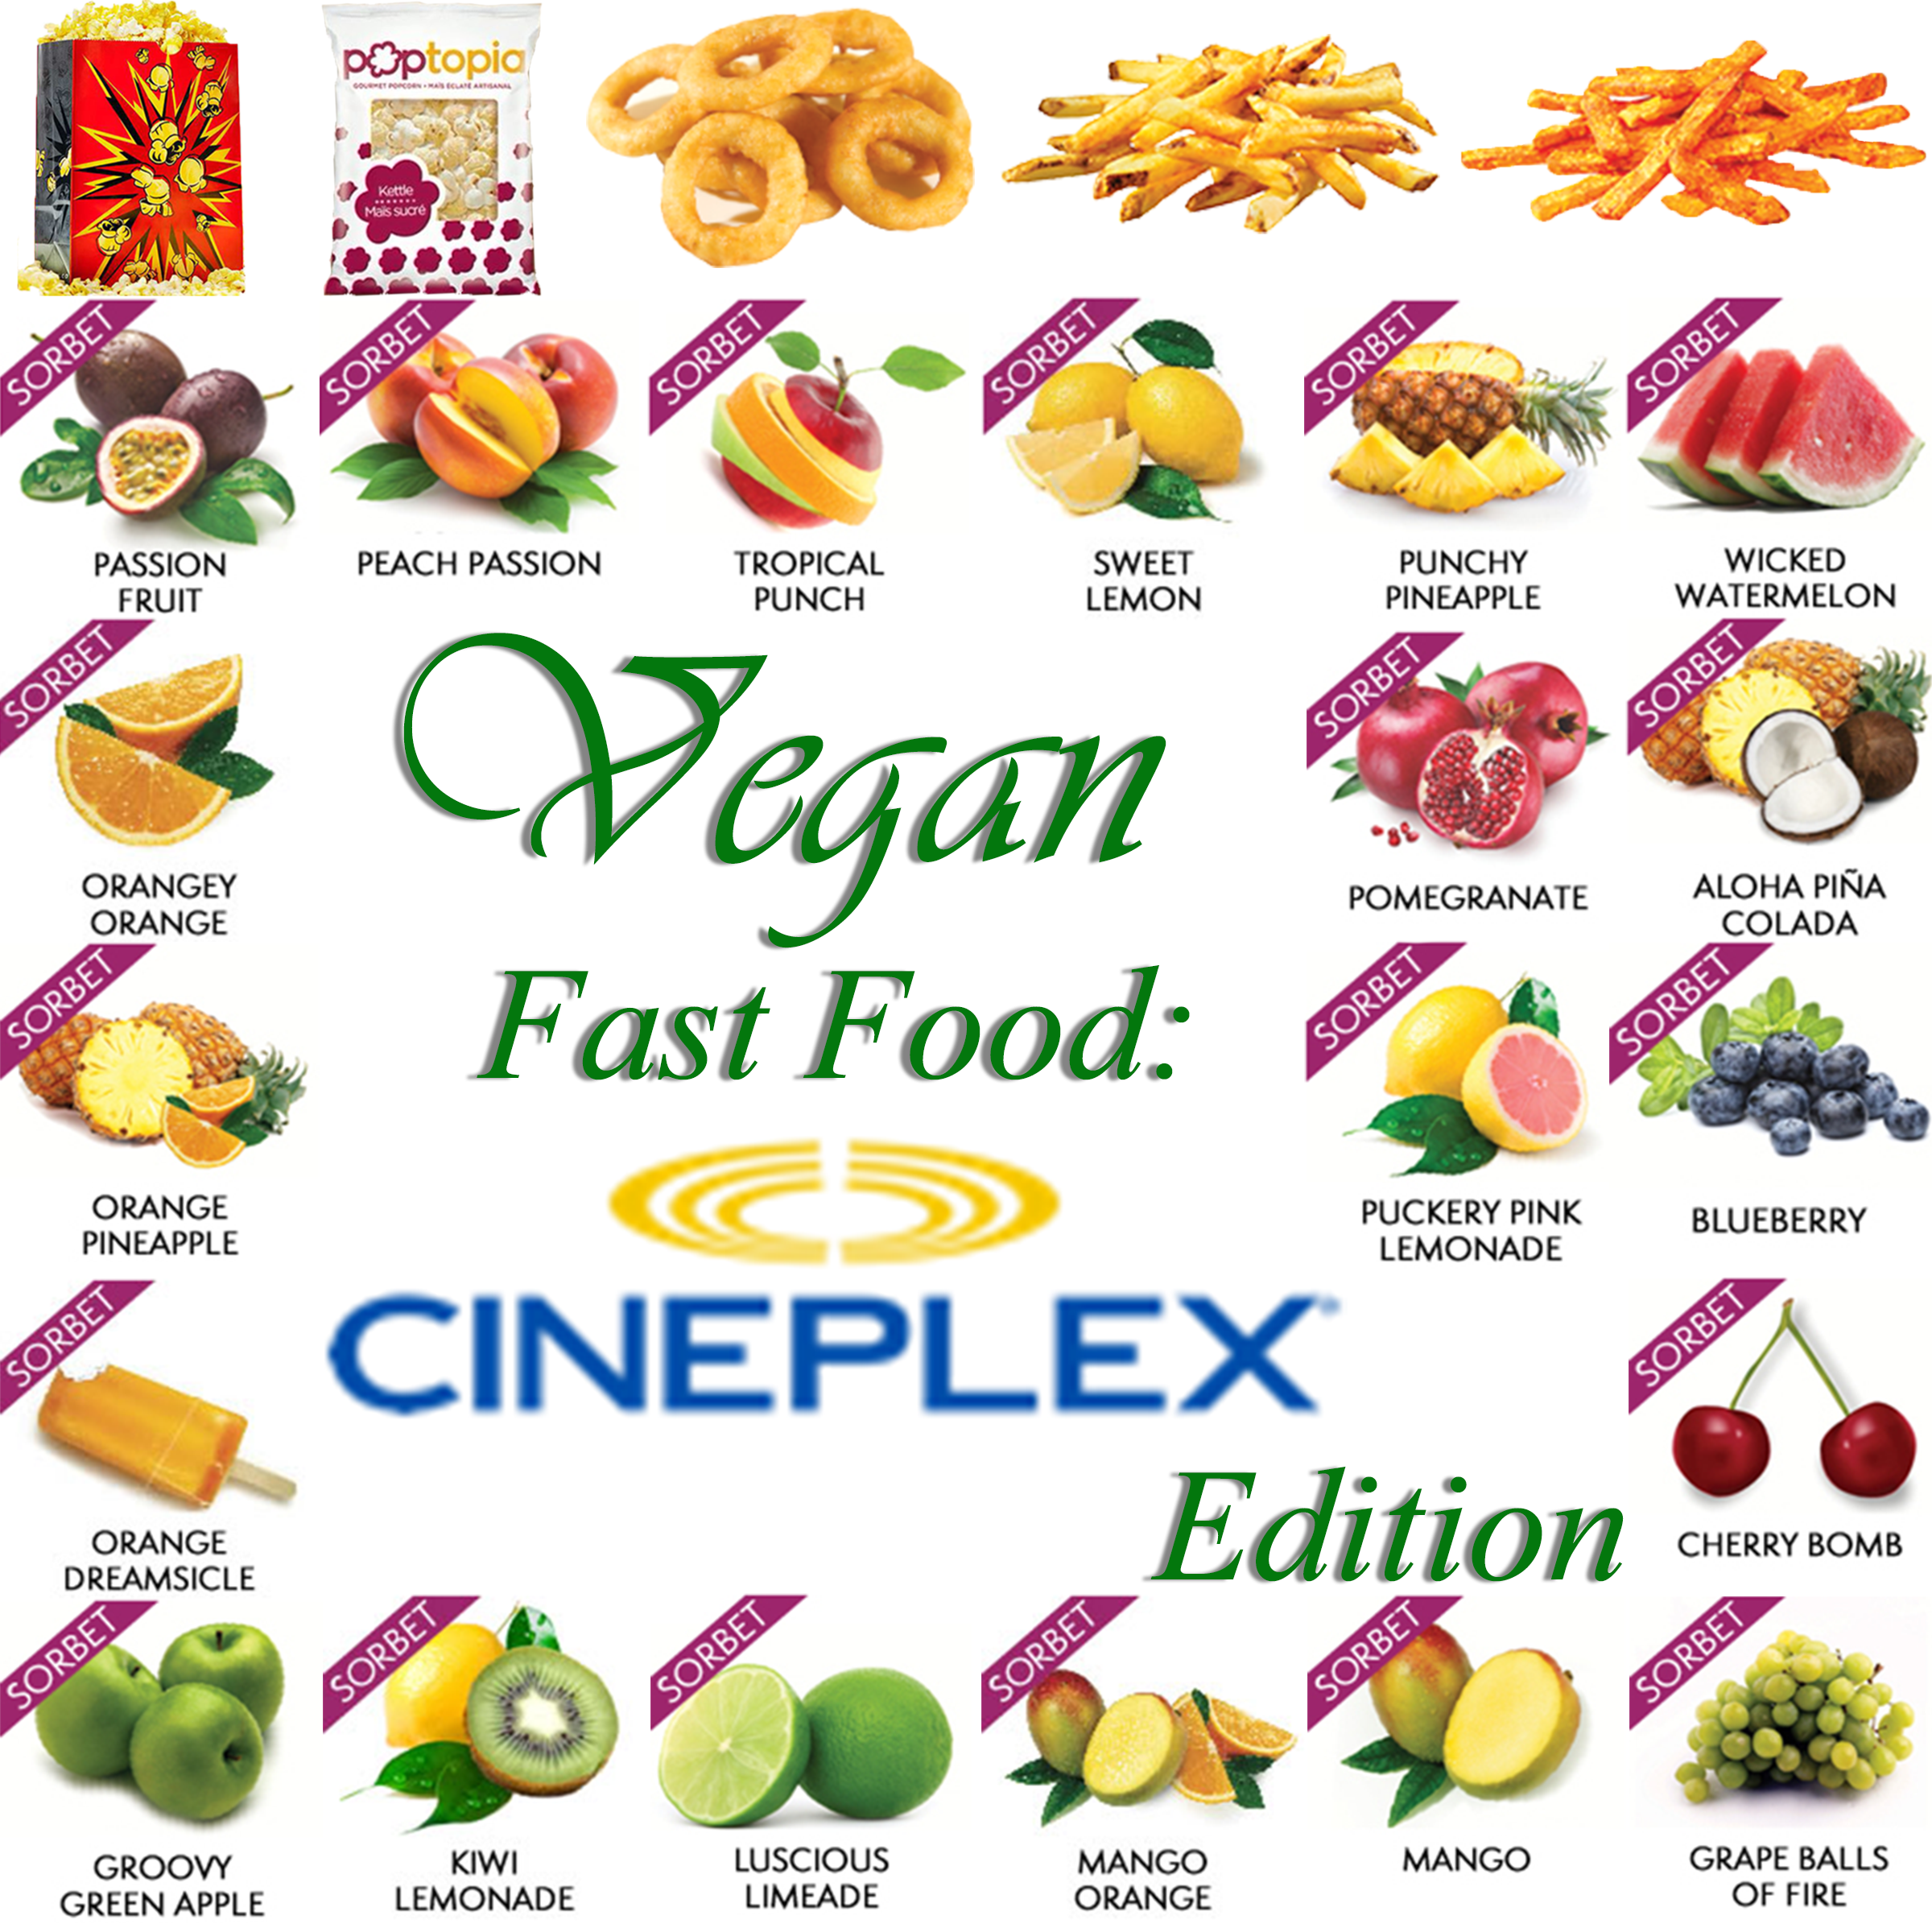 AterImber.com - The Veg Life - Vegan Tips - Vegan Fast Food Cineplex Edition